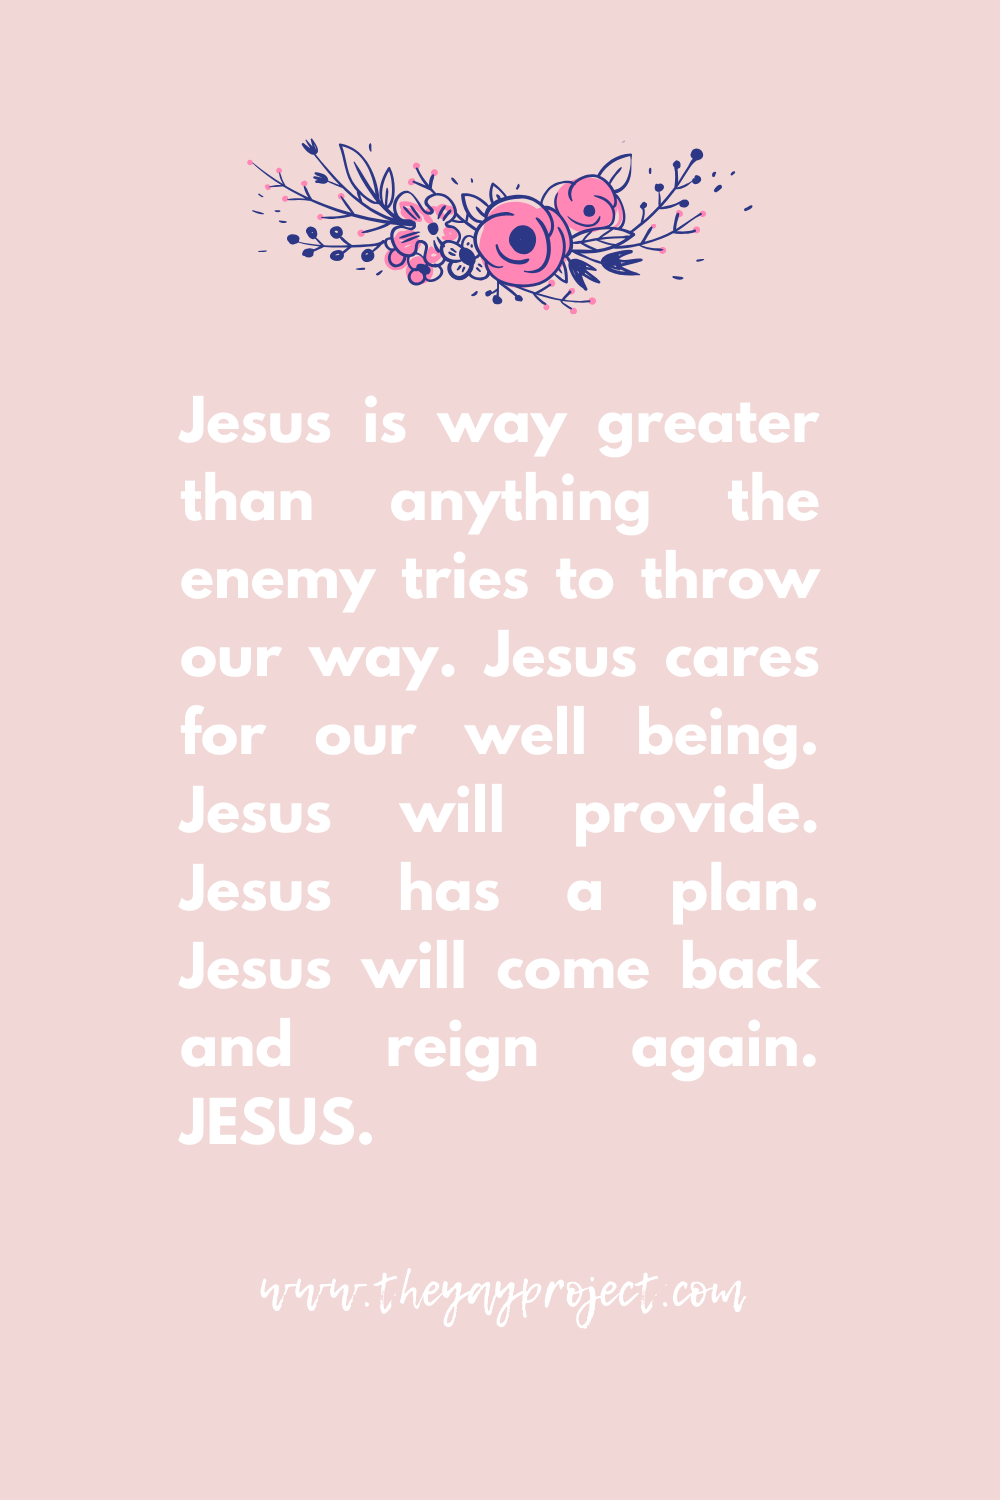 Praise Jesus Christian blog graphic by The Yay Project